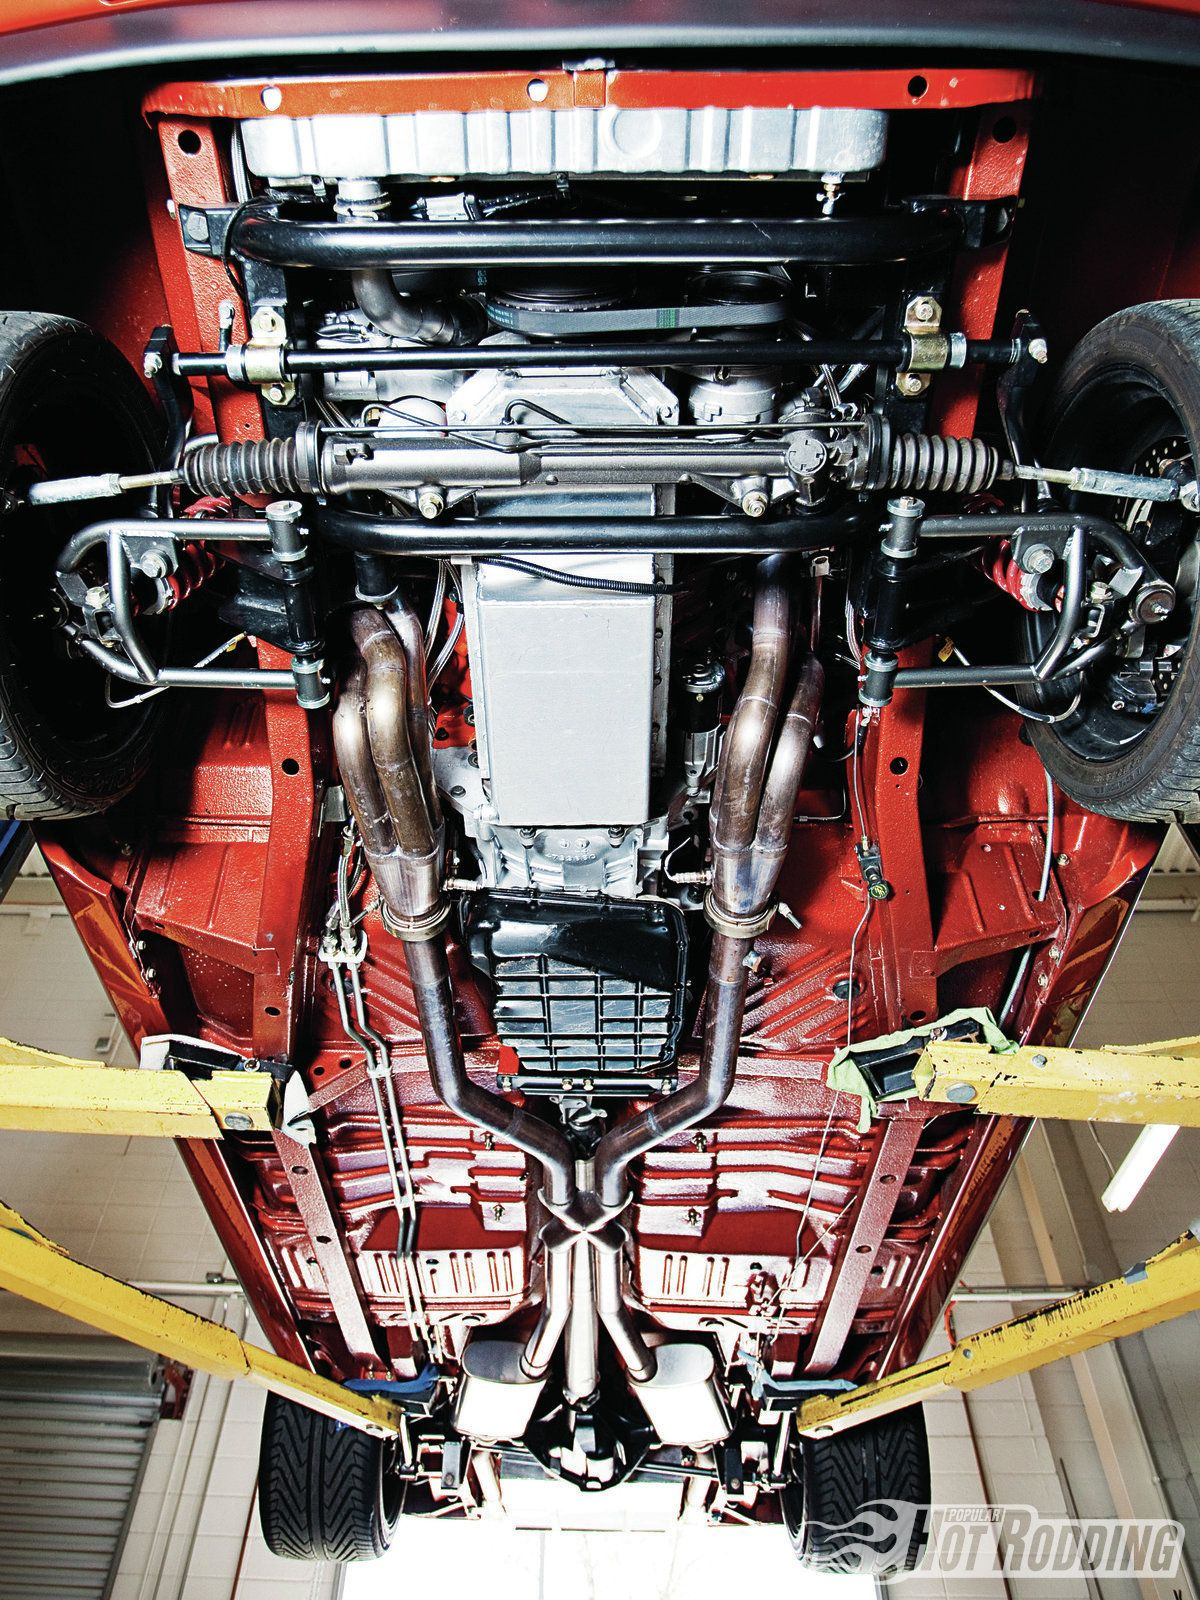 1209phr 27 z 1969 dodge charger jpg 1200 1600 dodge_charger pinterest dodge charger dodge and cars